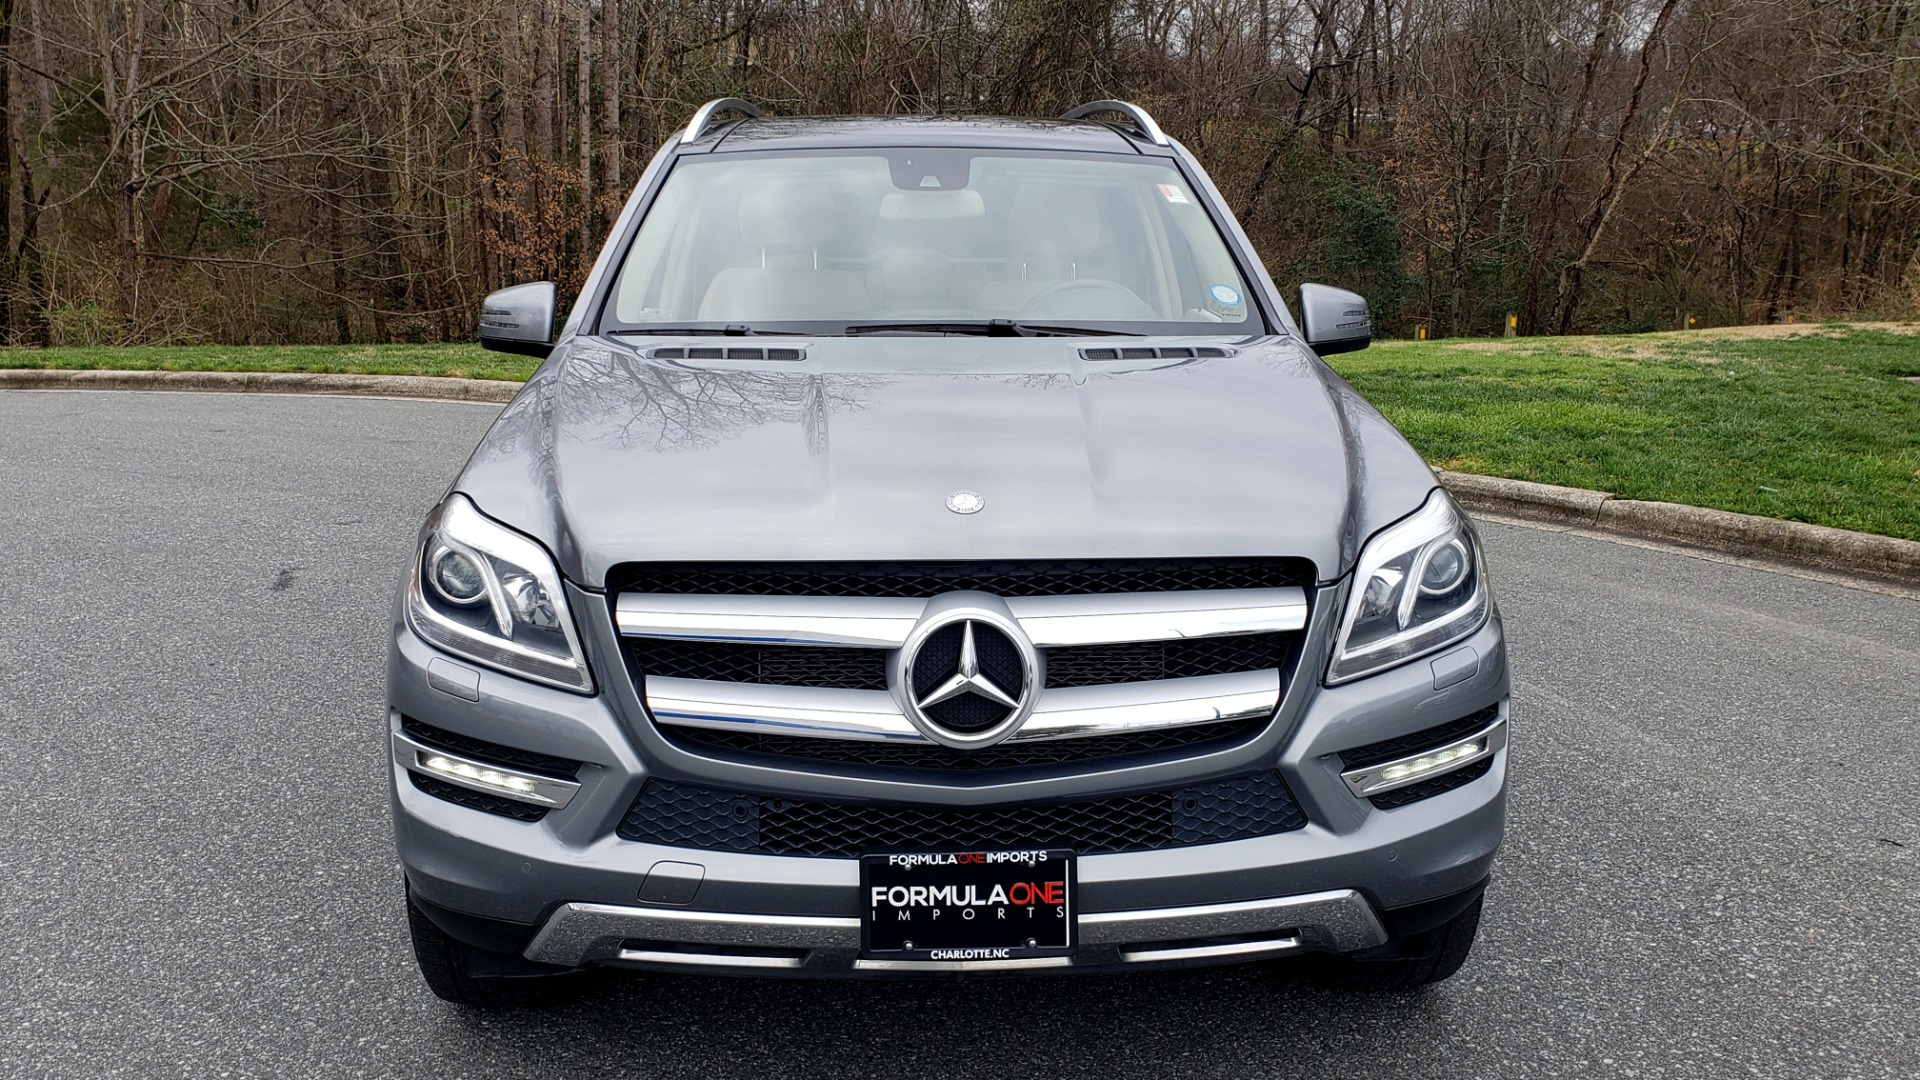 Used 2014 Mercedes-Benz GL-Class GL 450 4MATIC PREMIUM / NAV / PANO-ROOF / HK SND / 3-ROW for sale Sold at Formula Imports in Charlotte NC 28227 31